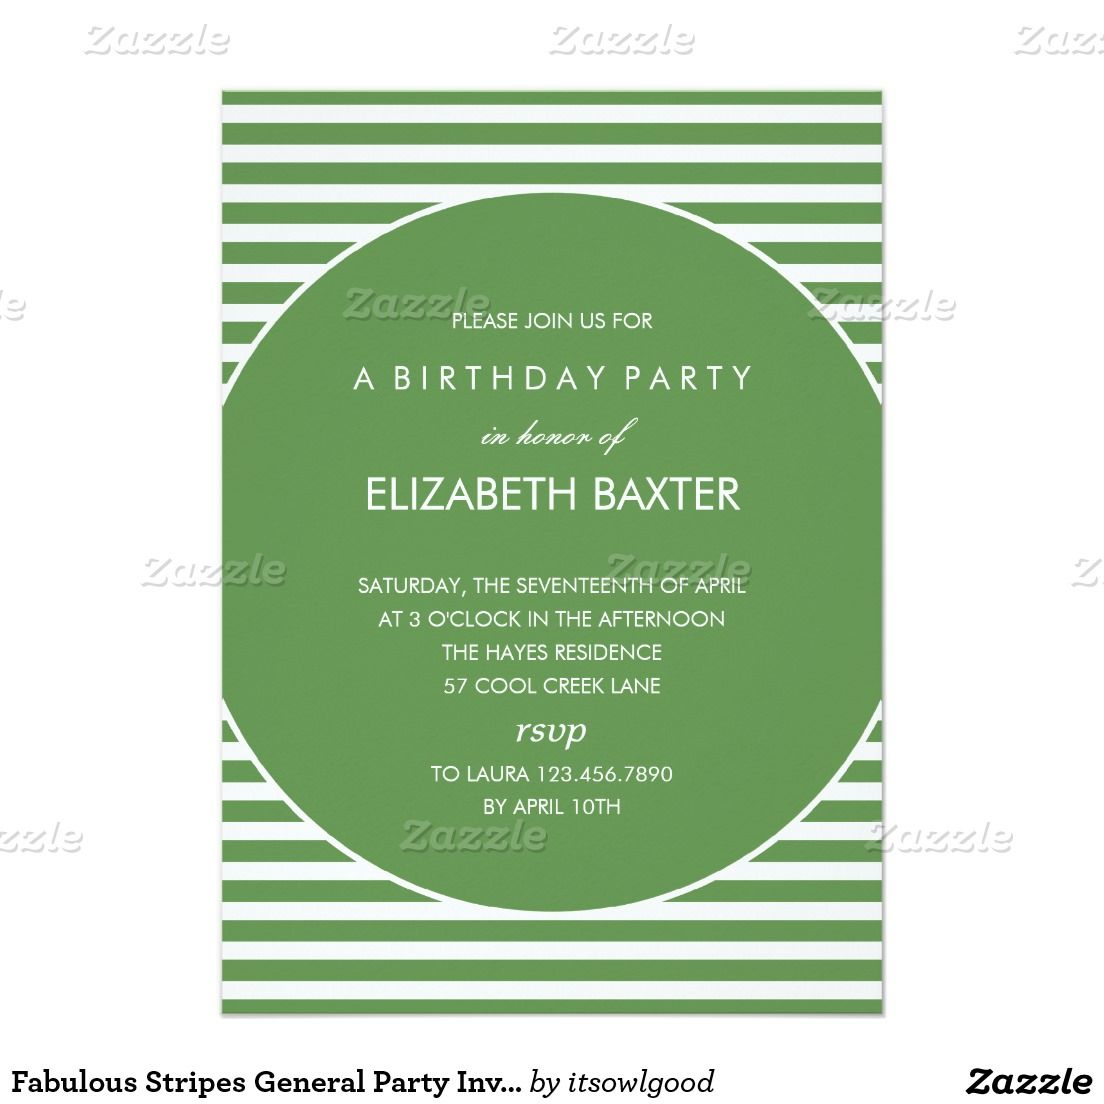 Fabulous Stripes General Party Invitation (Green) | Party invitations